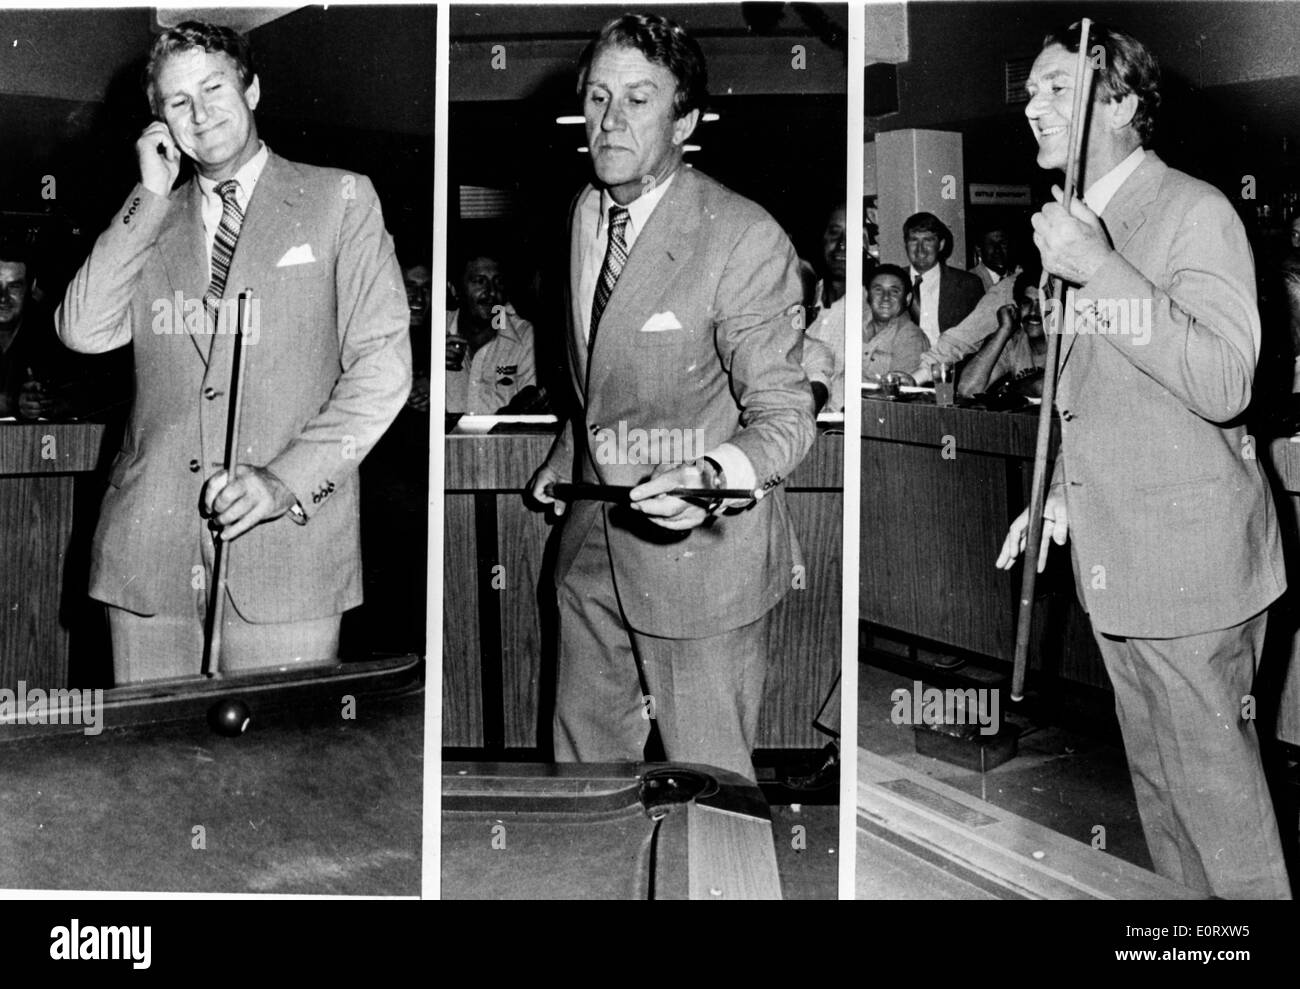 Series of photos of Malcolm Fraser shooting pool - Stock Image